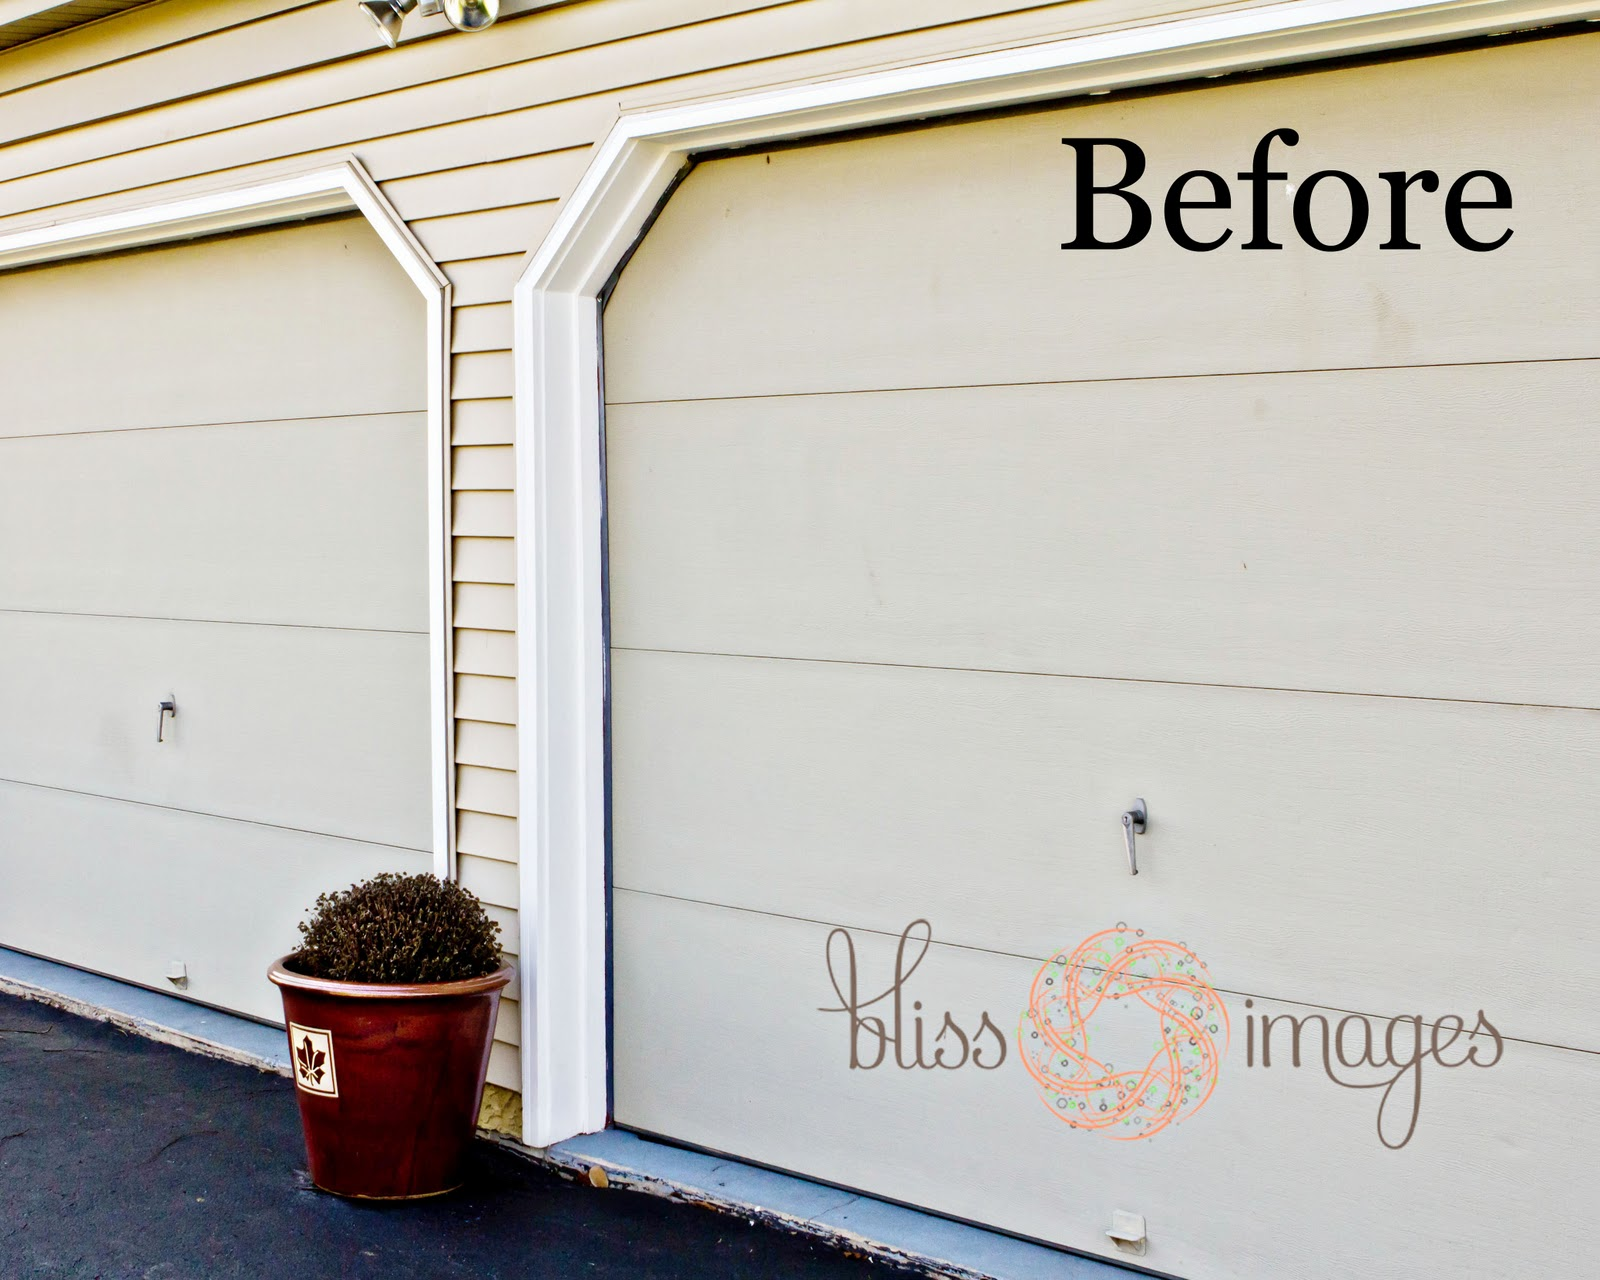 1280 #643518 Bliss Images And Beyond: New Garage Doors save image Garage Doors New 36871600